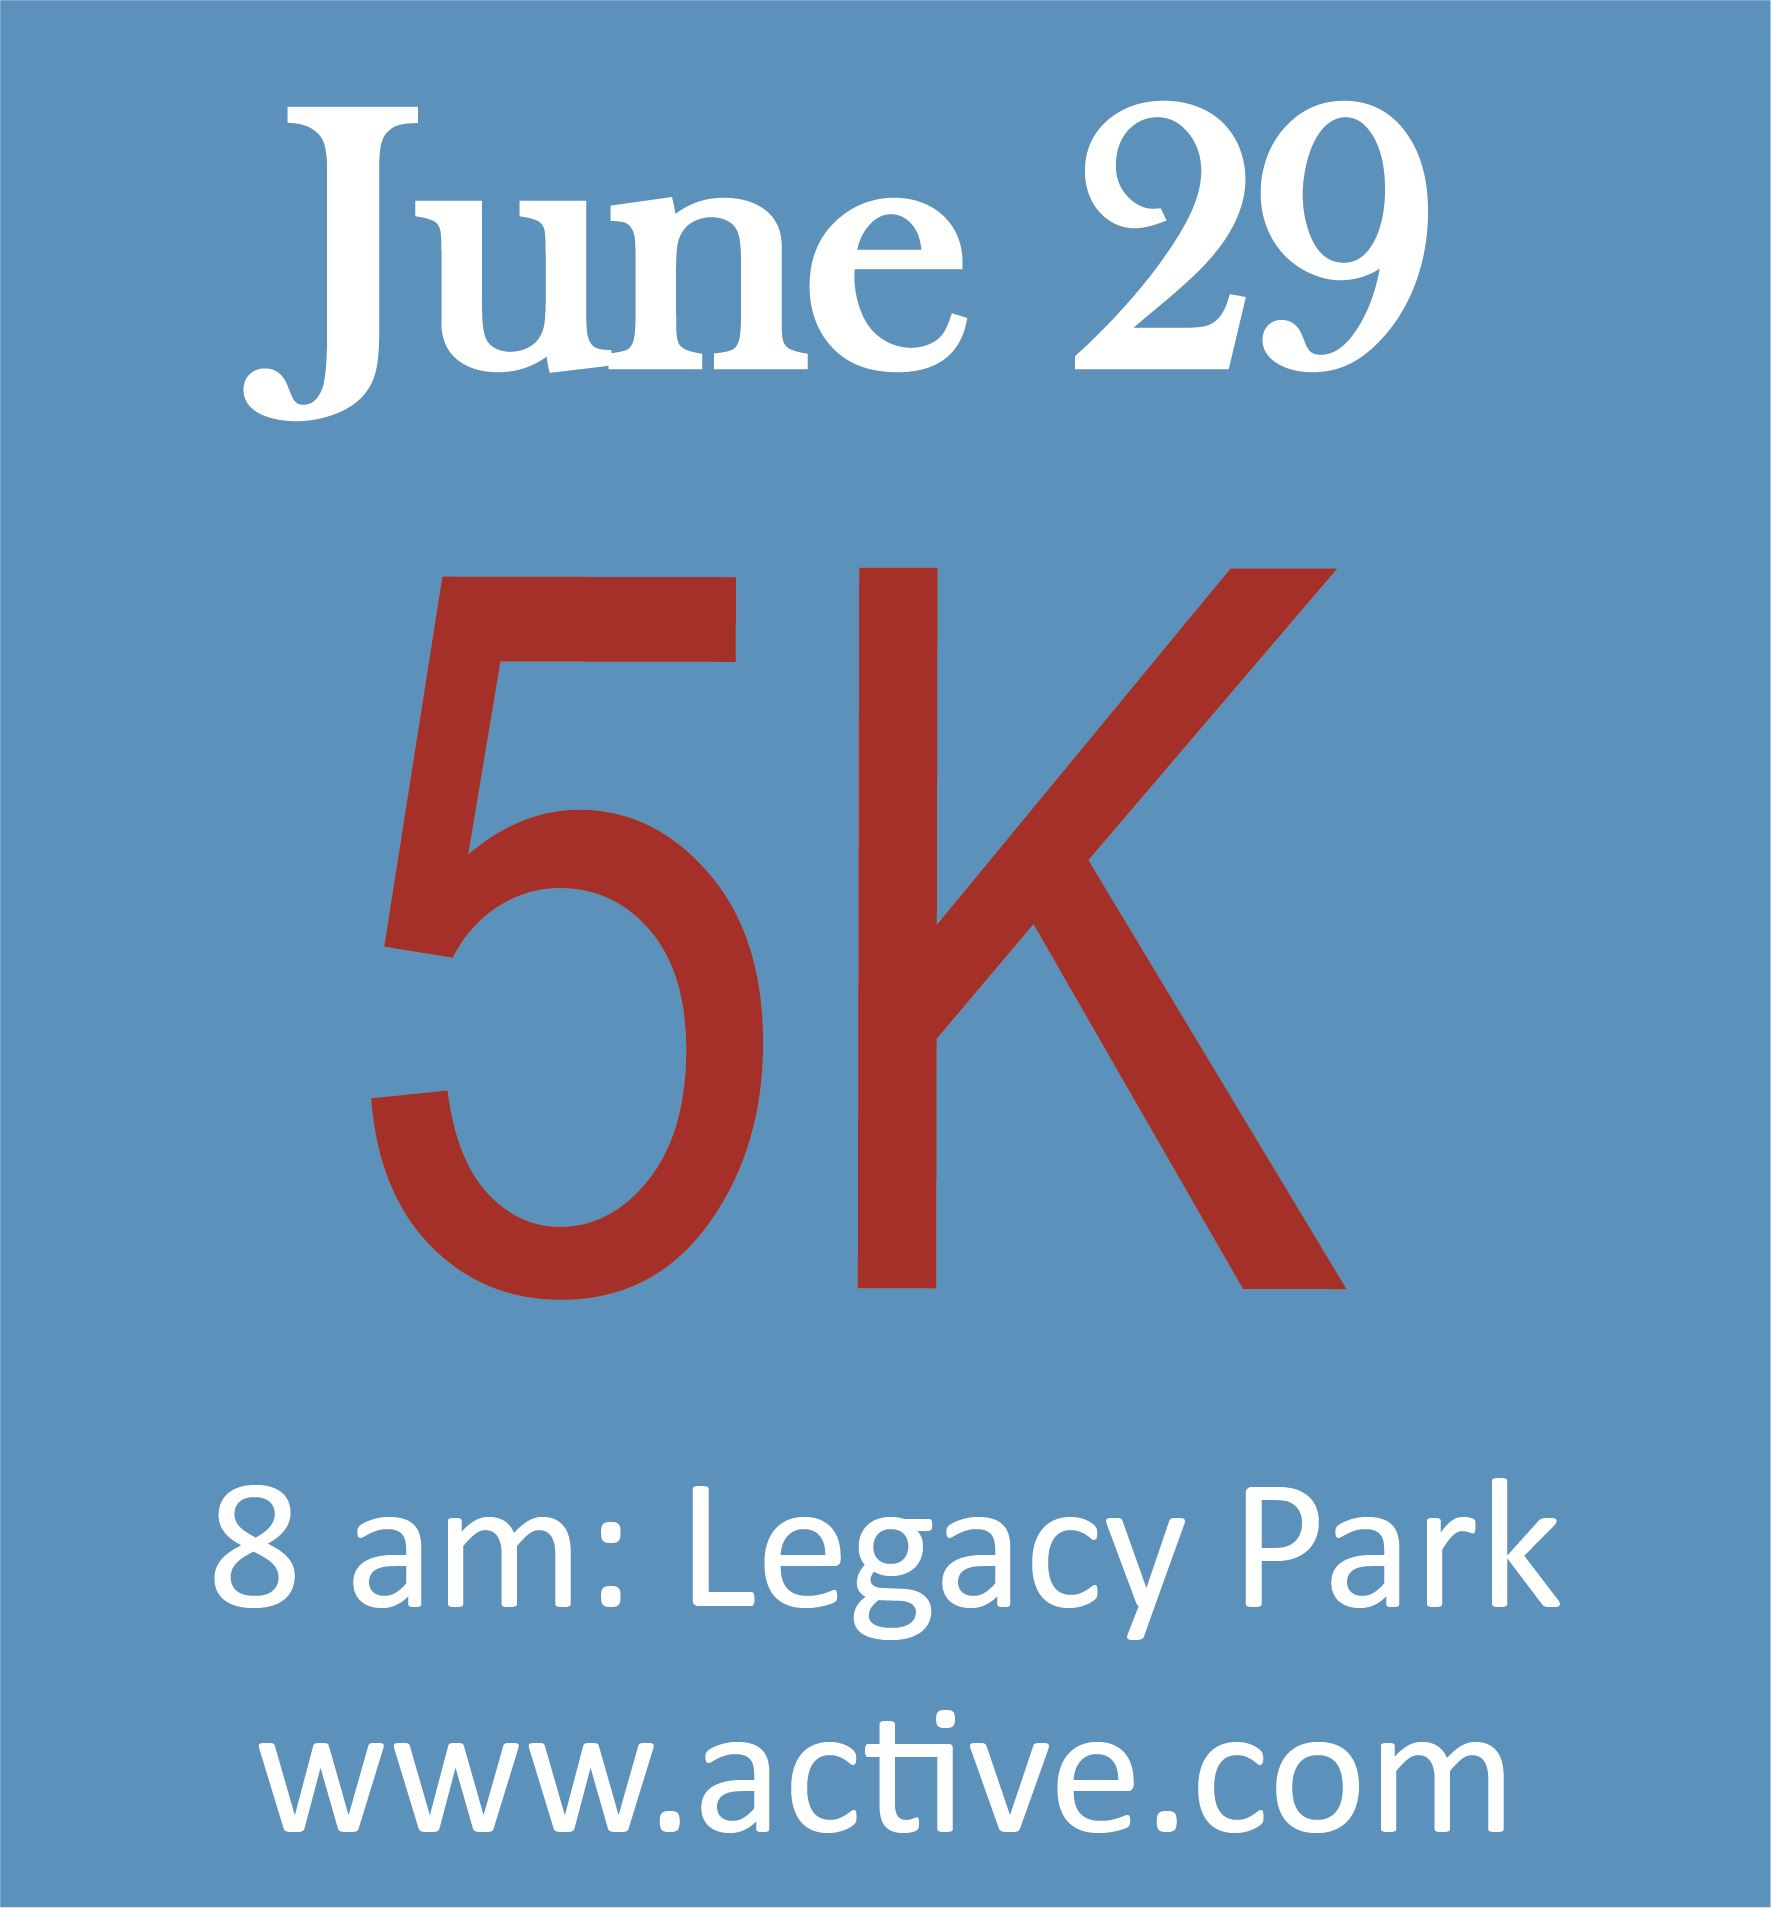 5K blue square date and red 5K